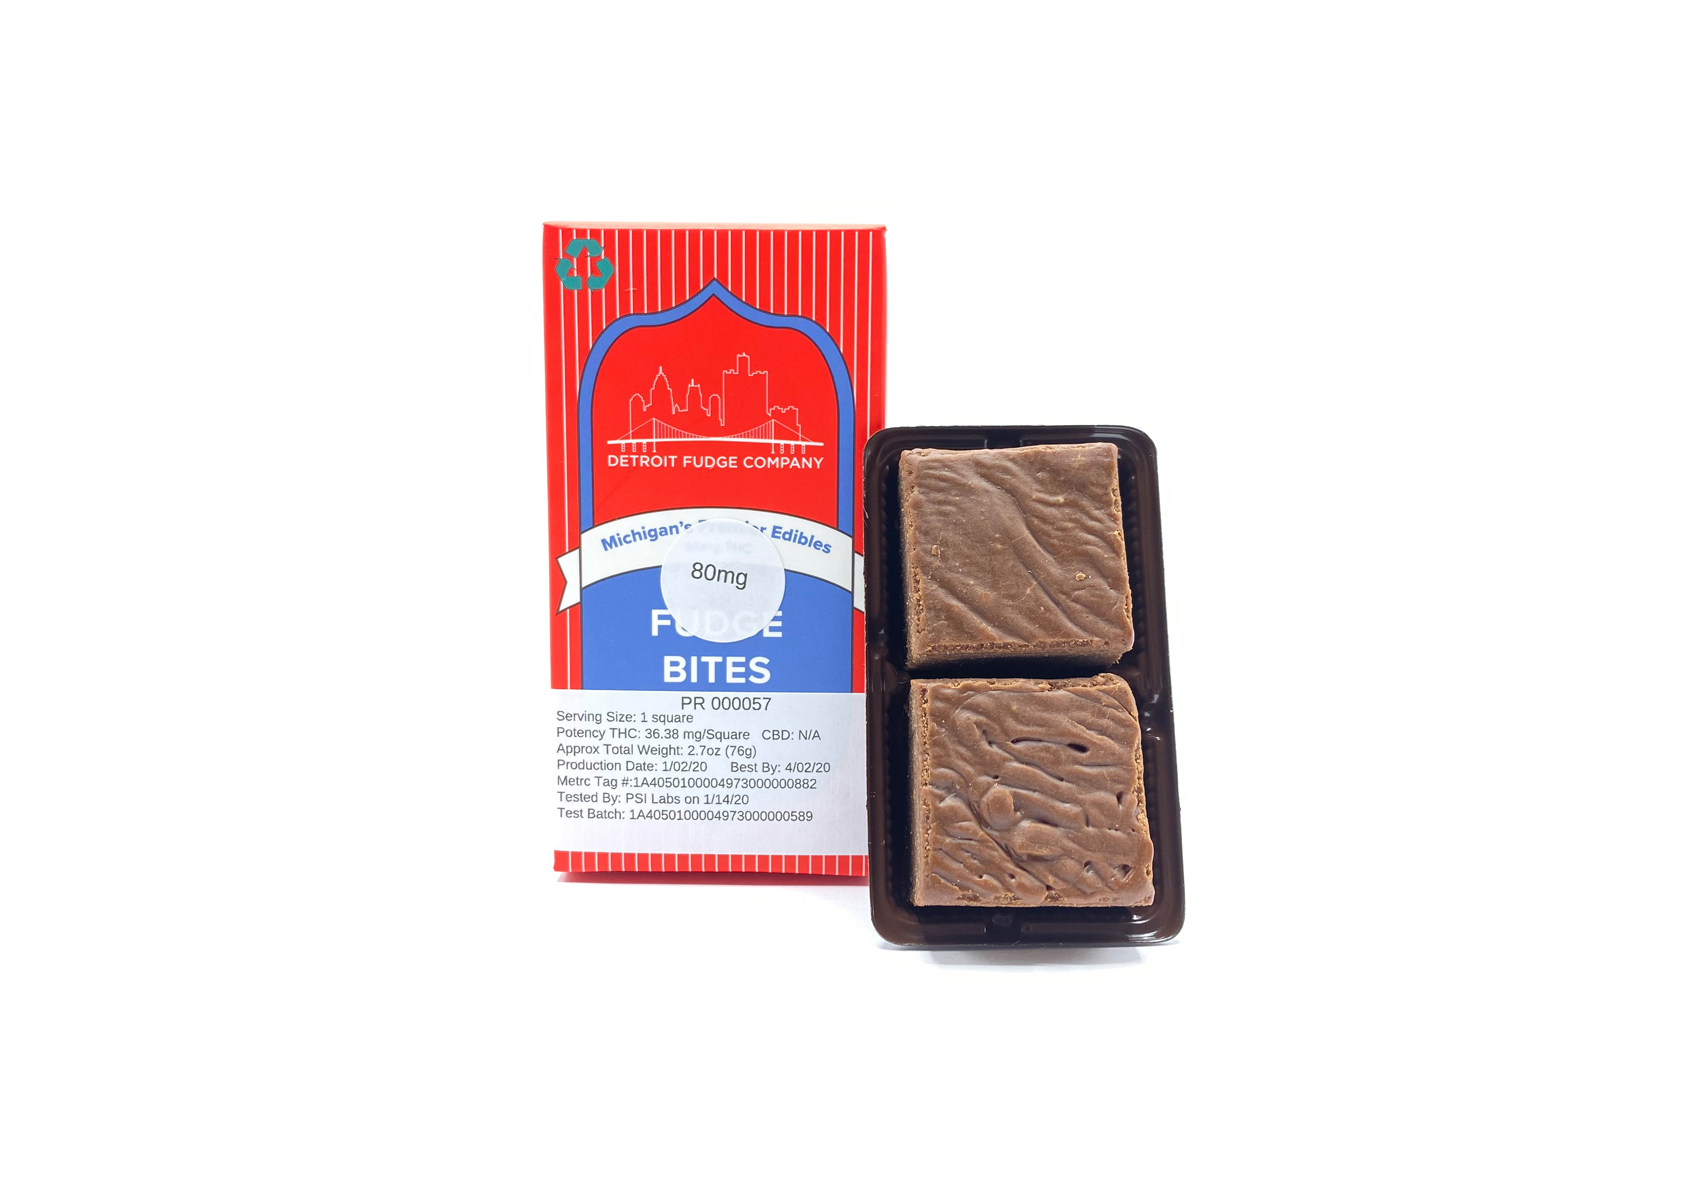 80mg Chocolate Fudge Bites | Detroit Fudge Company